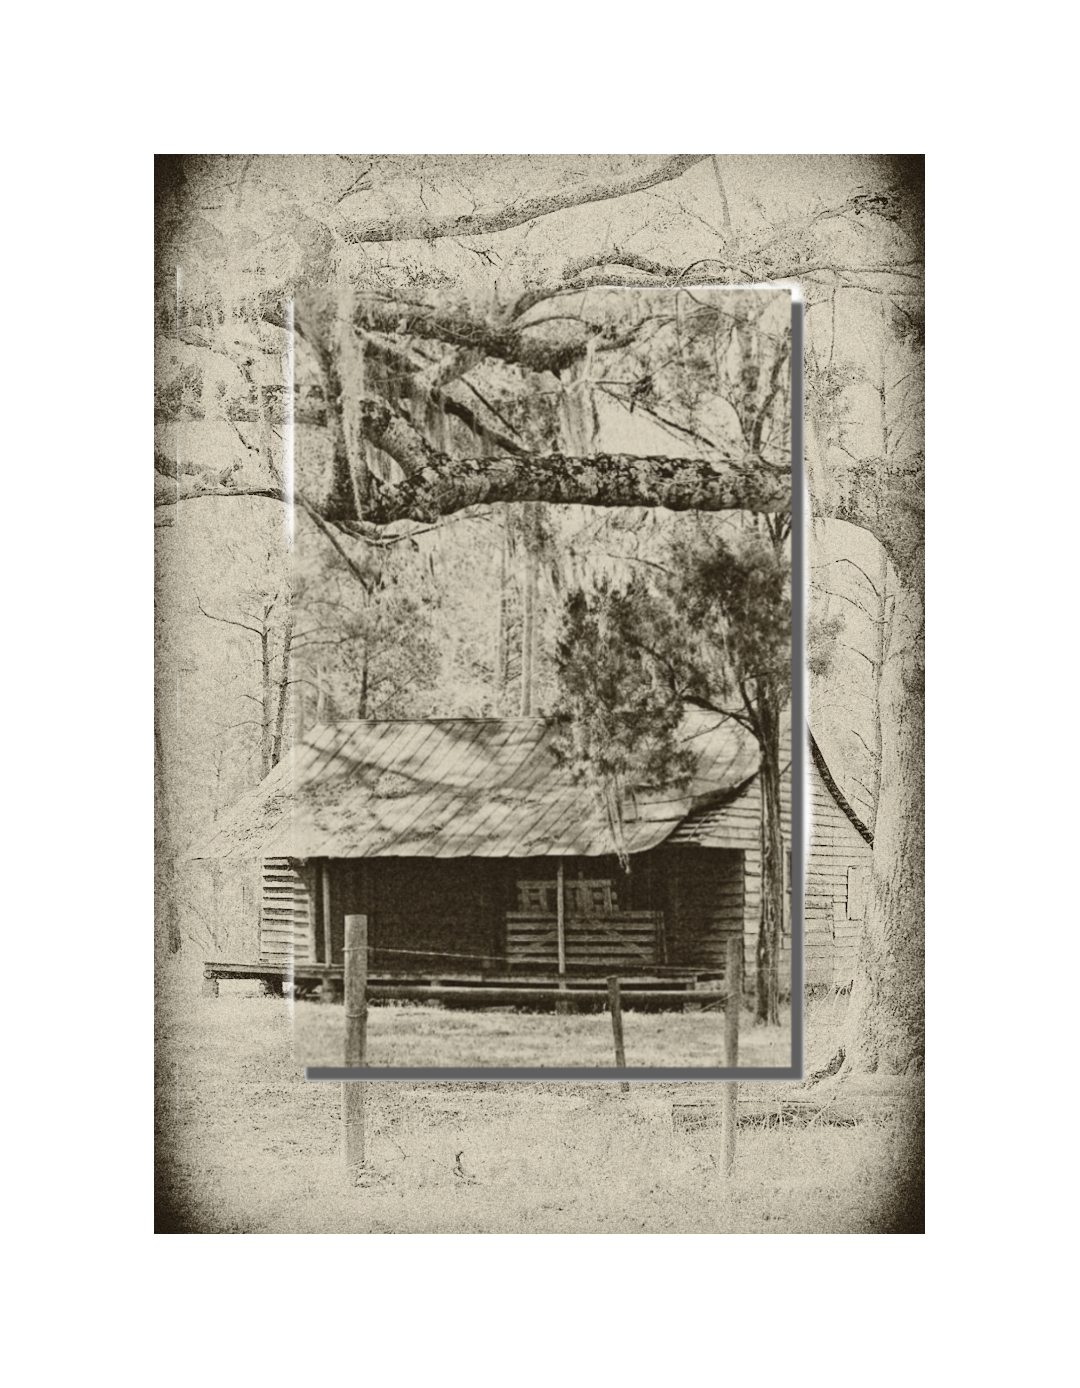 Sharecropper's Home (Vintage Style) DOUBLEFLOAT METALPRINT